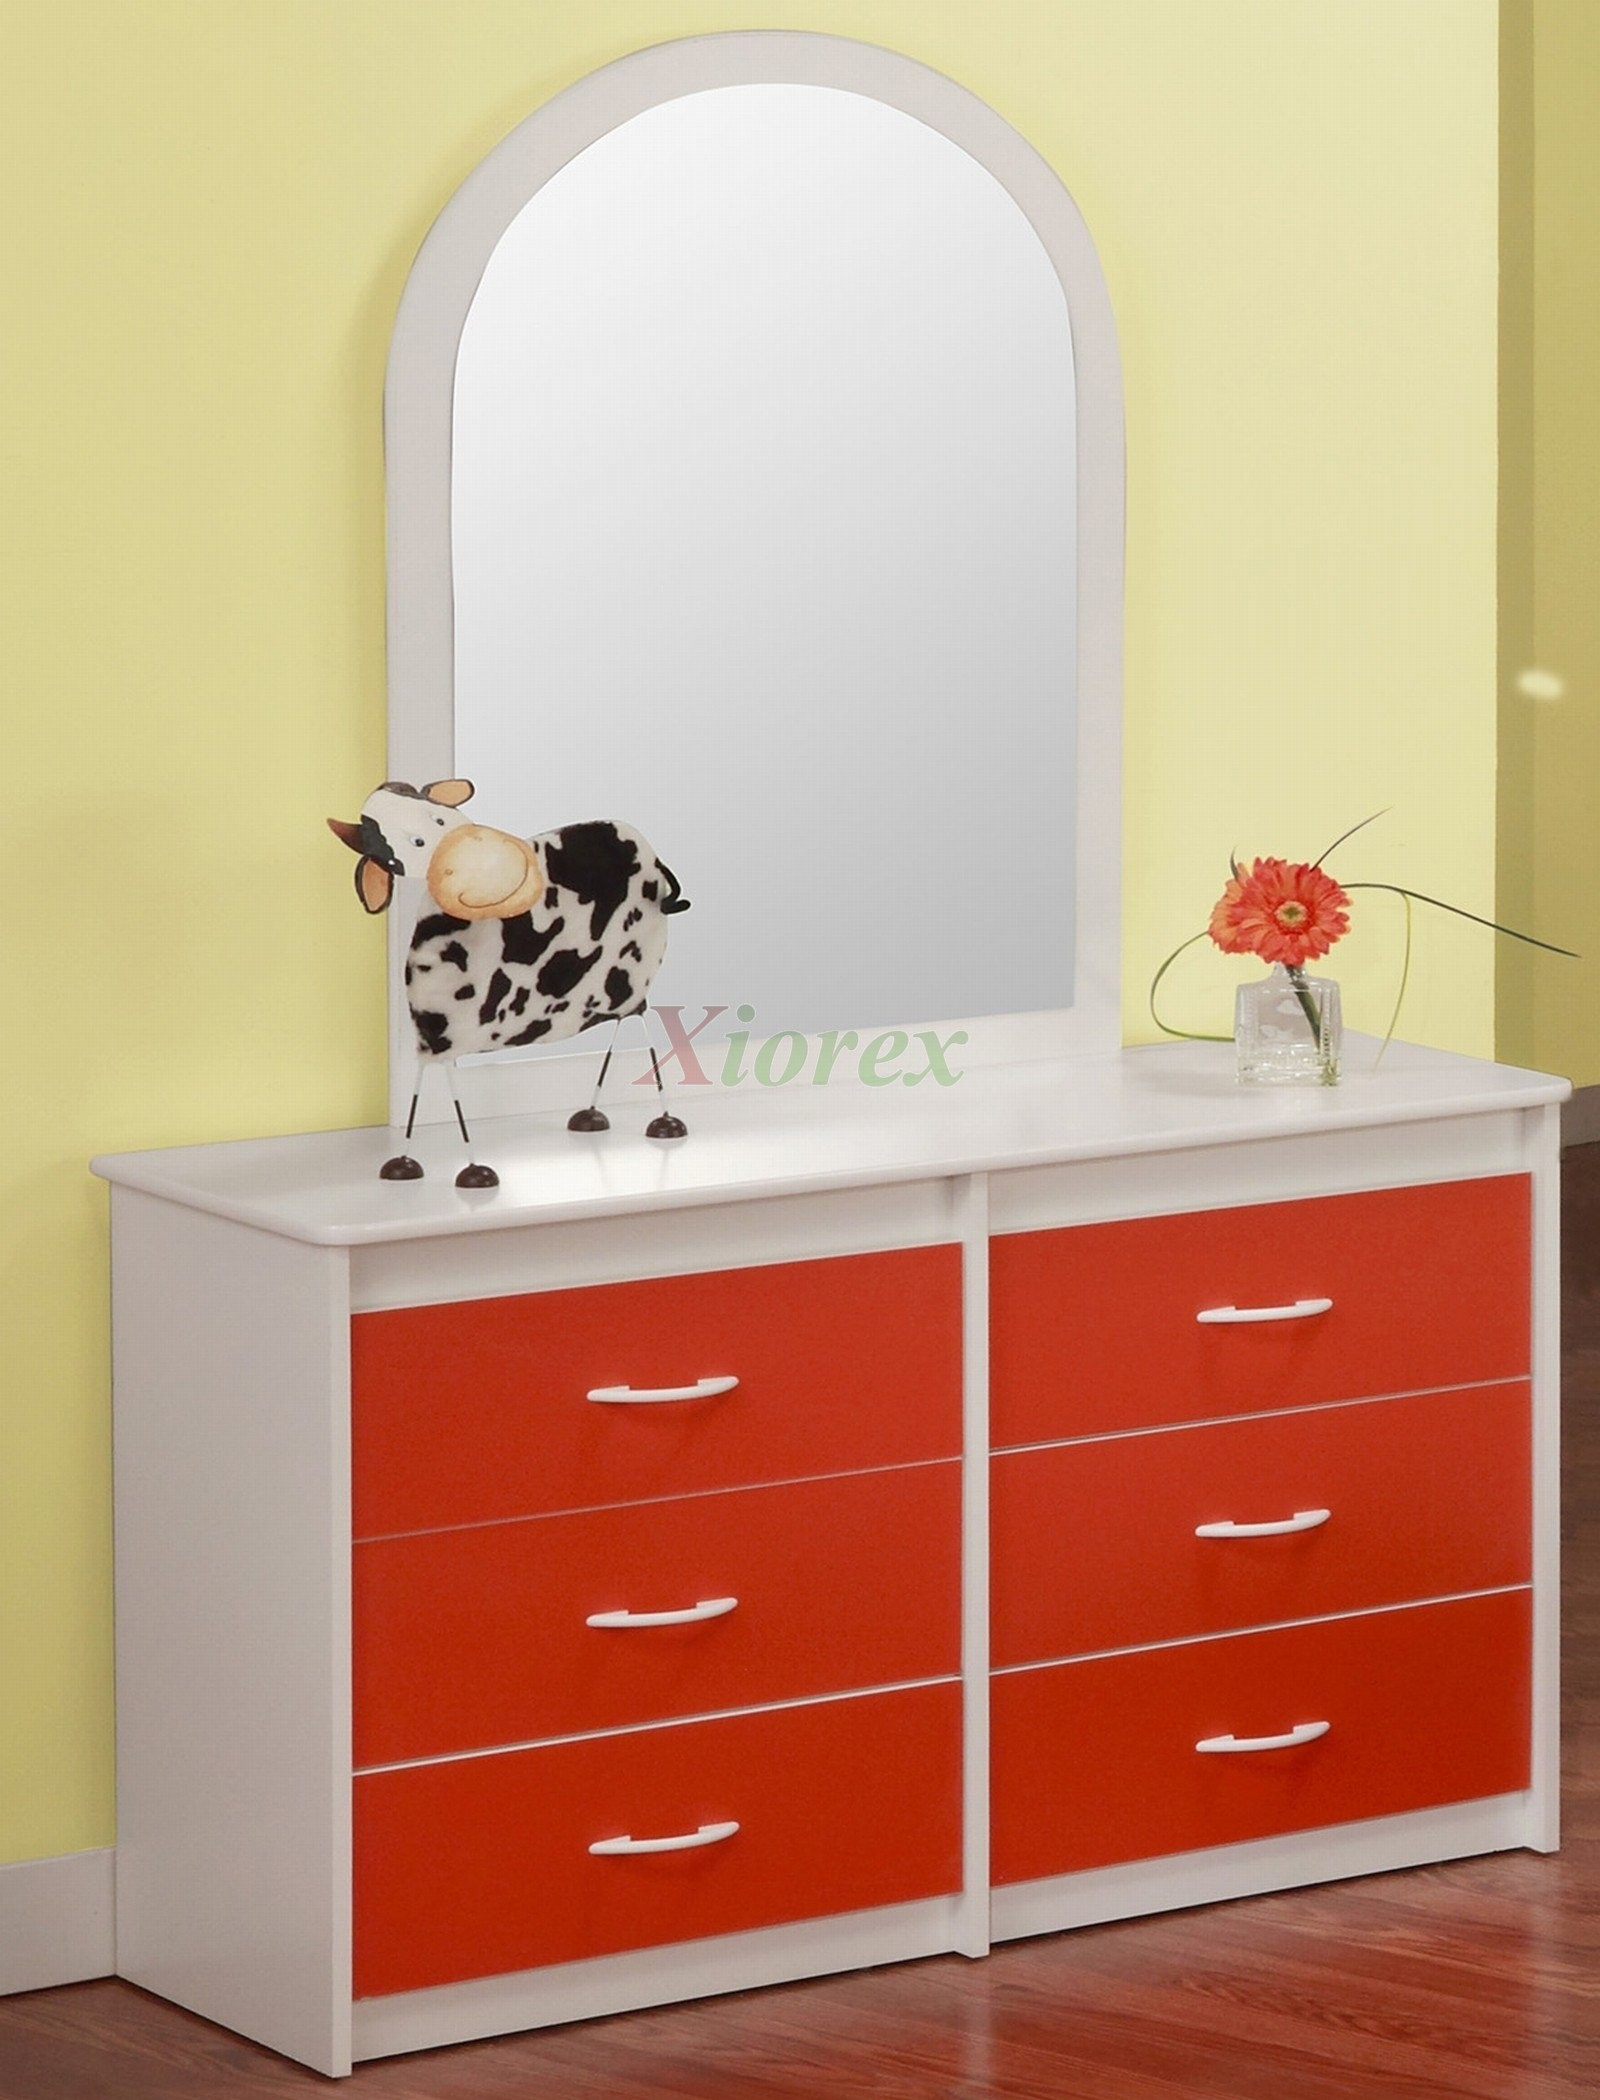 Orange White Dresser For Kids Life Line Tango Xiorex